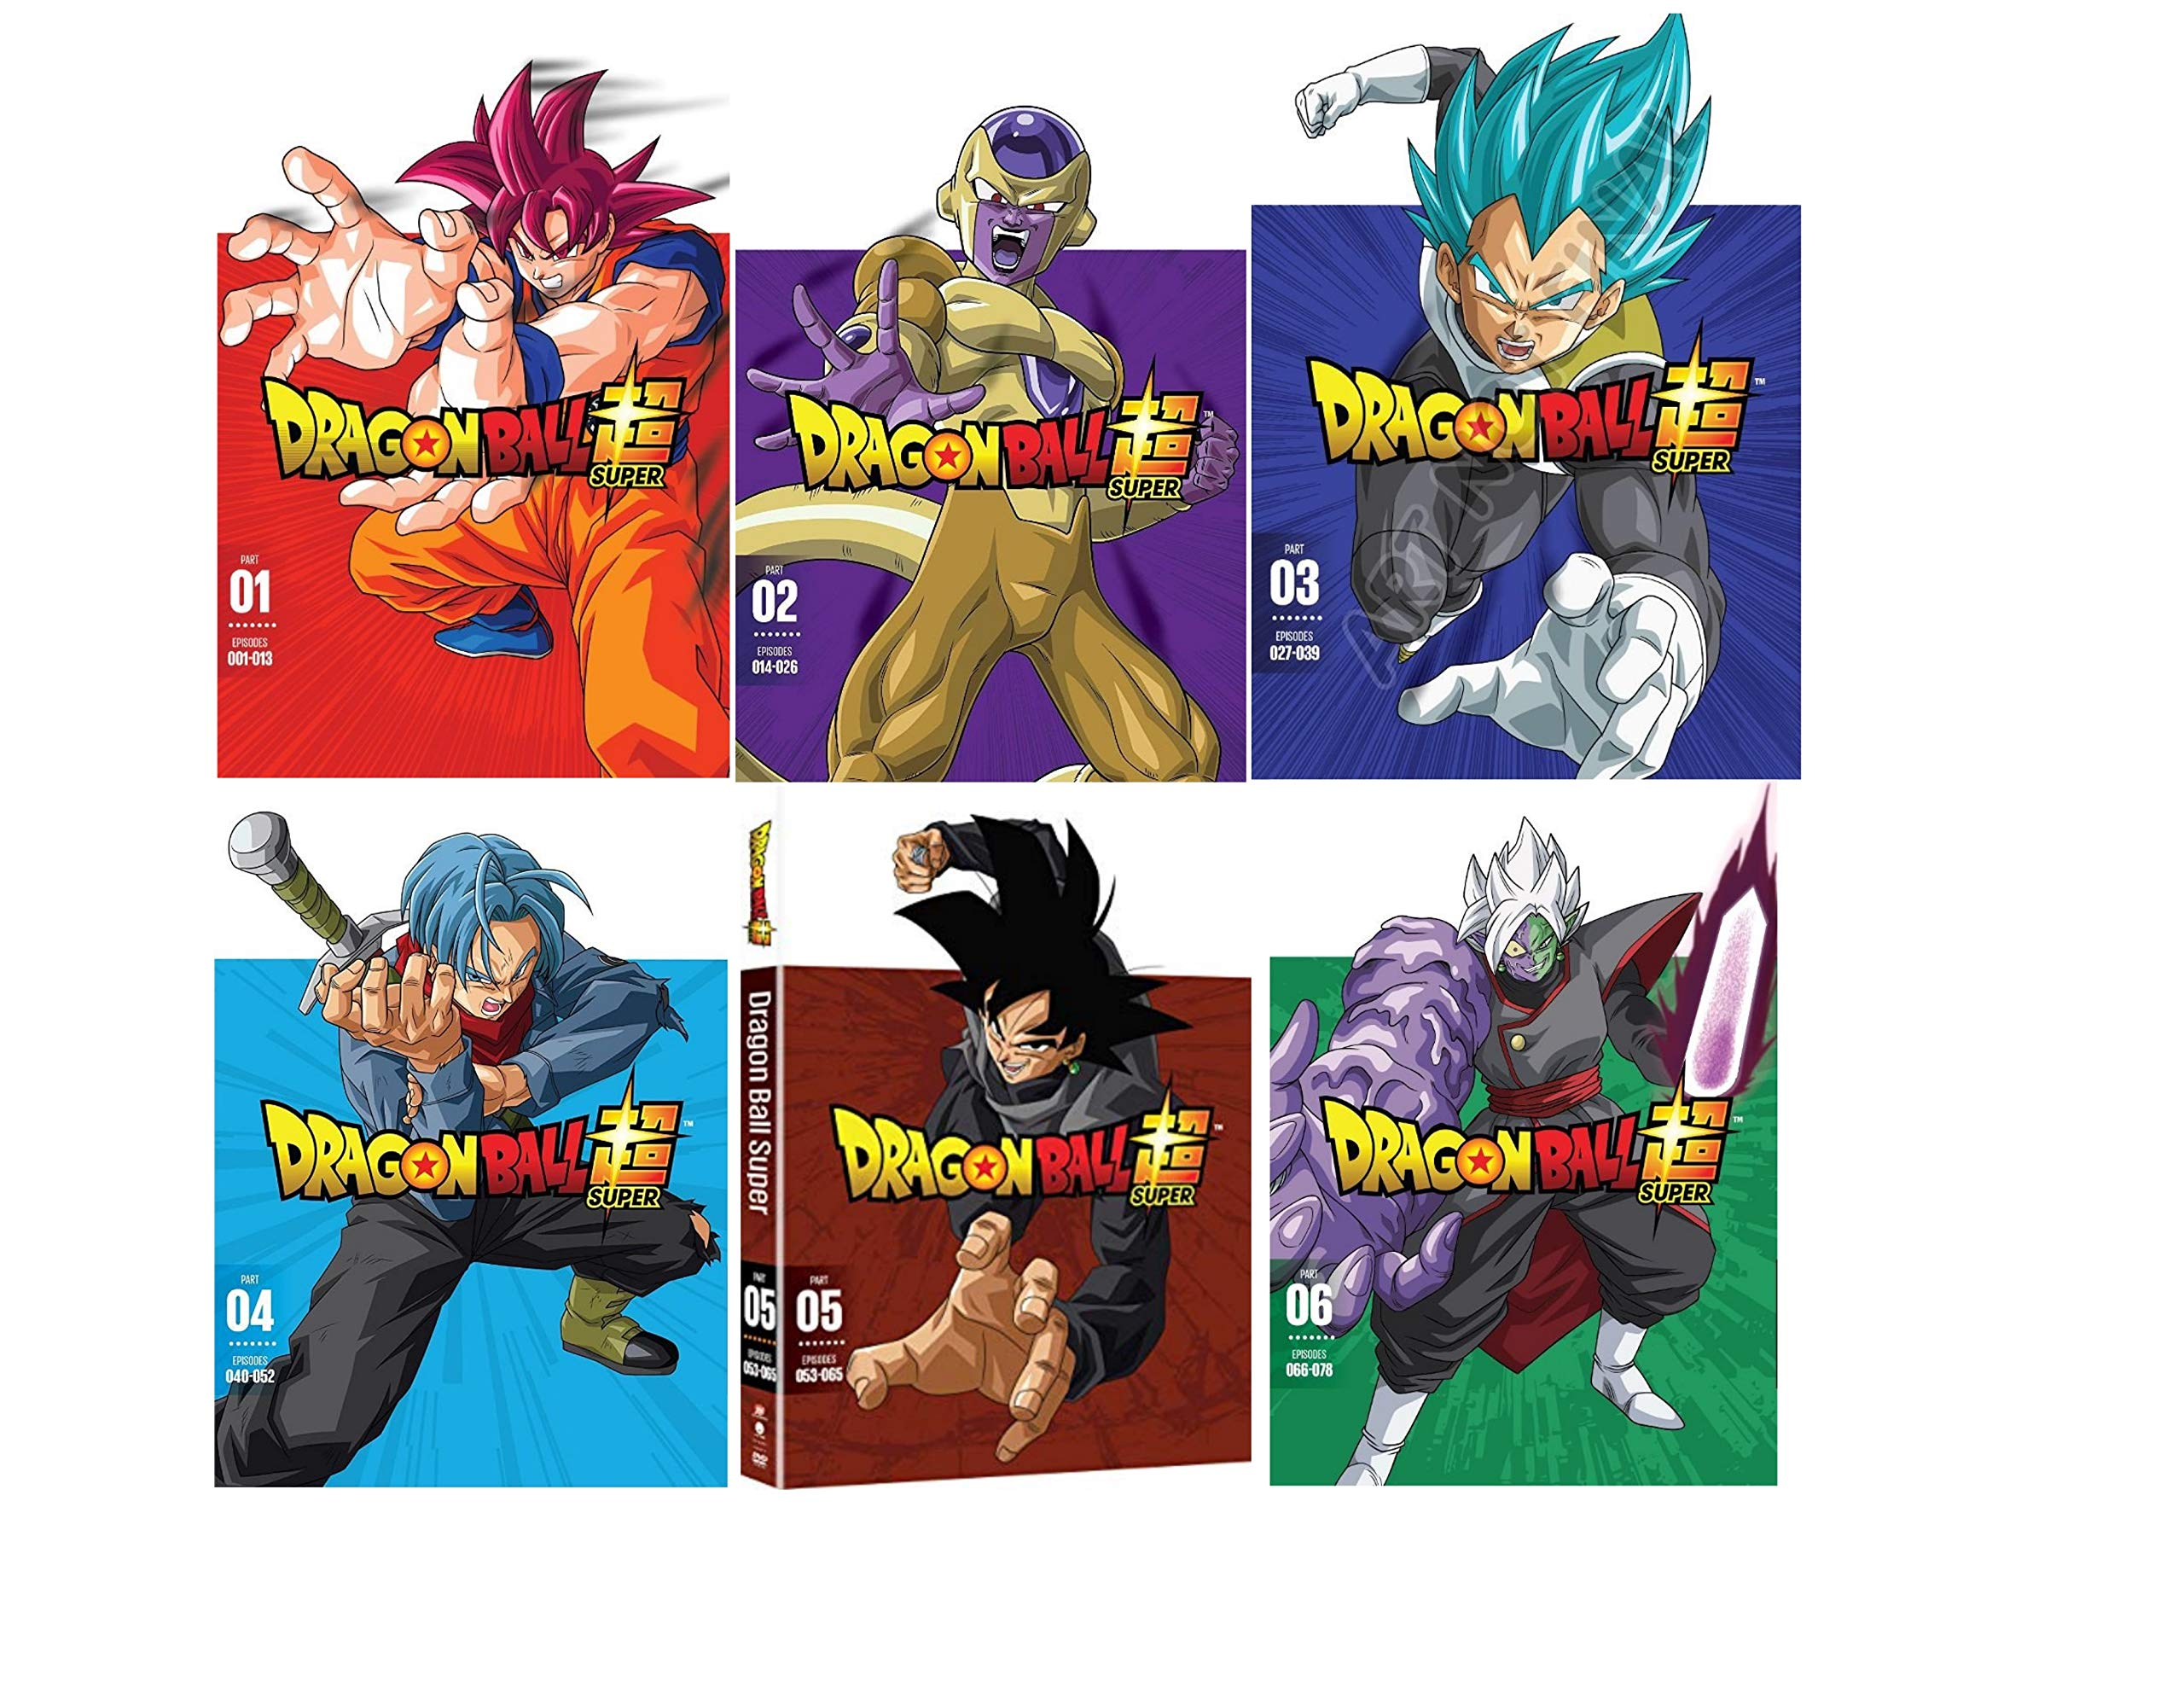 Dragon Ball Z Super: Complete Series Part 1-6 DVD by VA (Image #1)